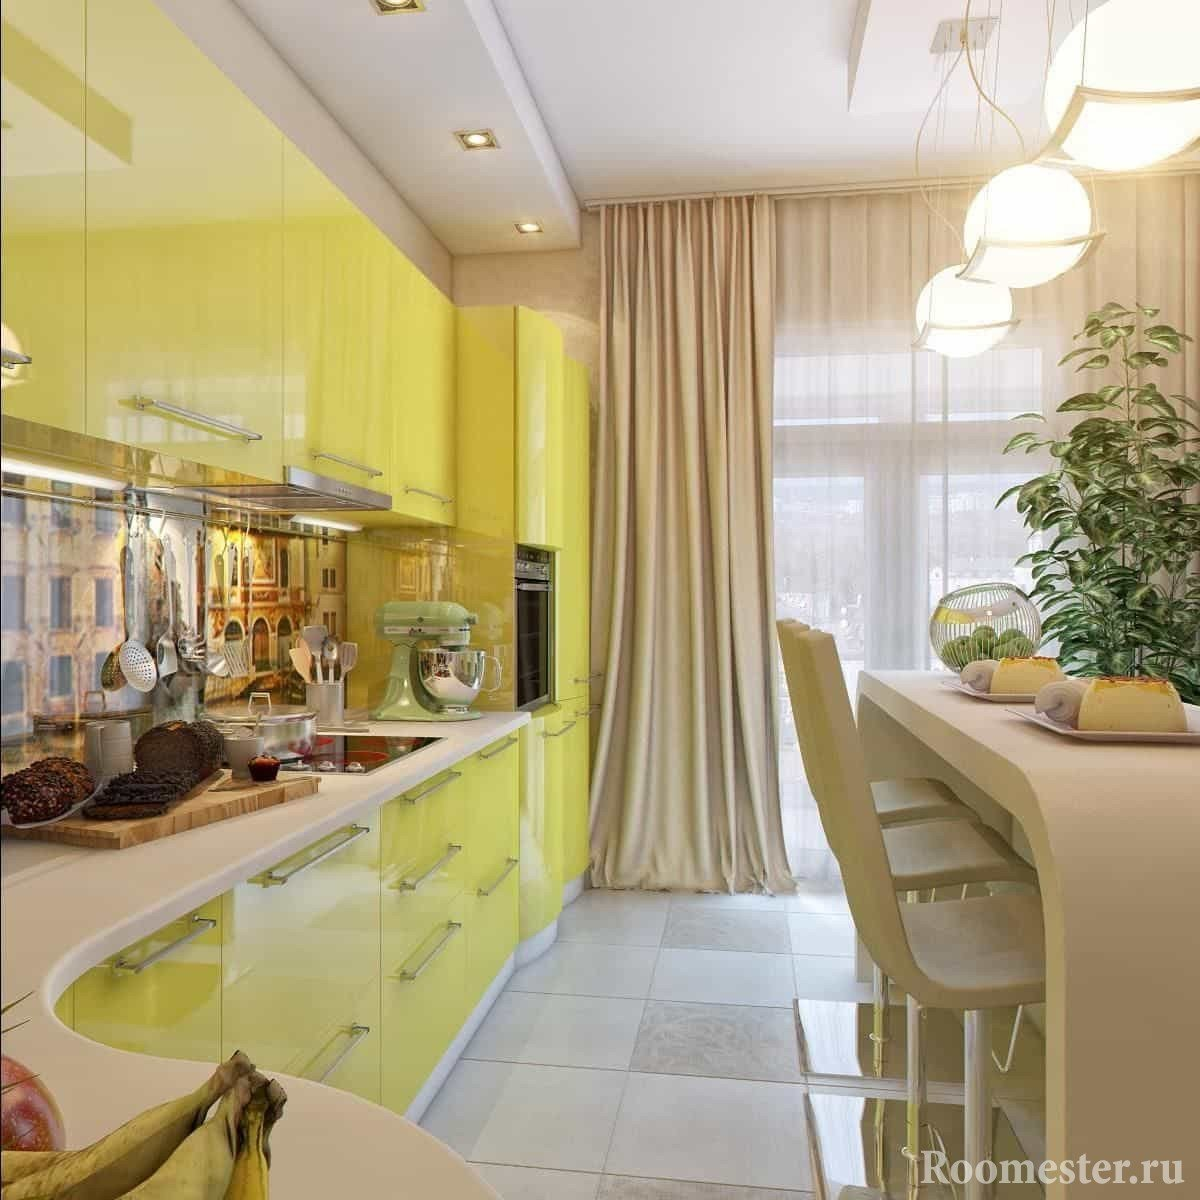 Corner elongated yellow kitchen with original table